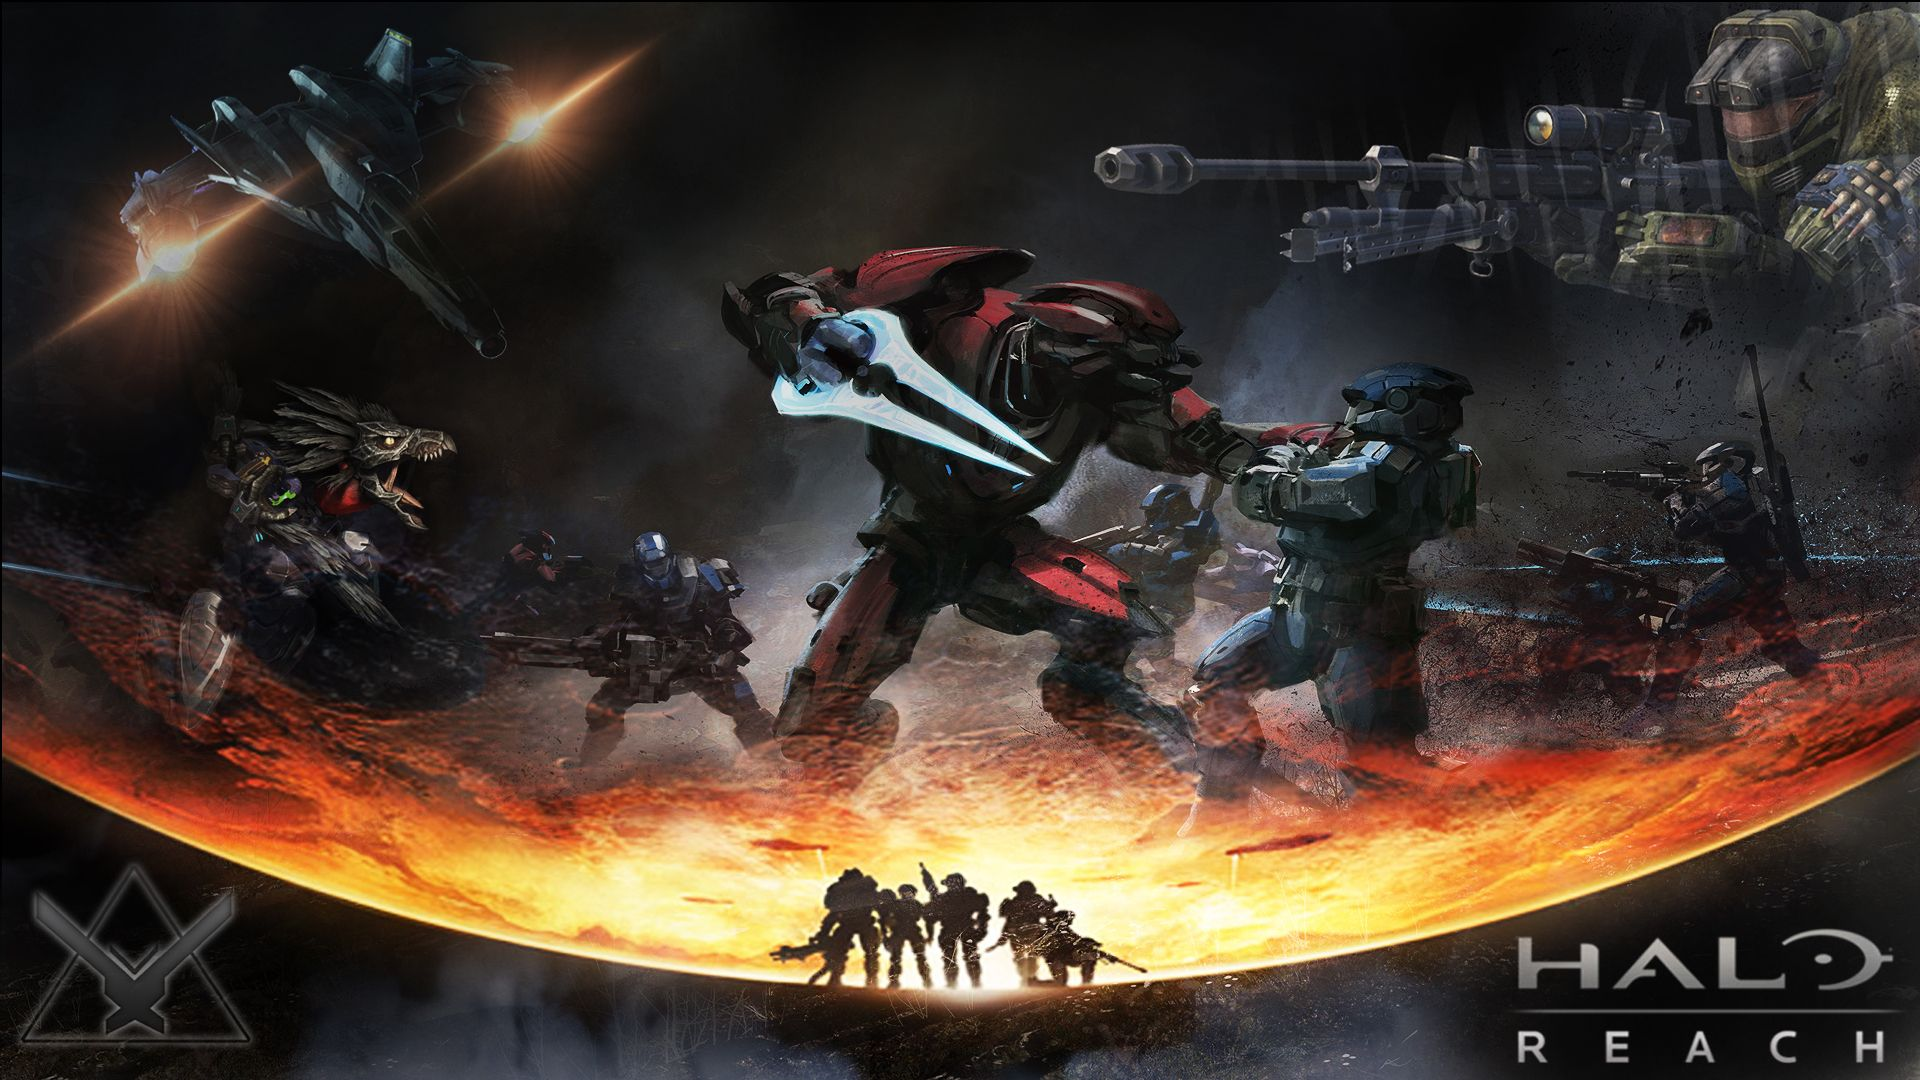 Halo Reach Backgrounds In K Halo Halo Reach Cool Wallpaper Hd Wallpaper